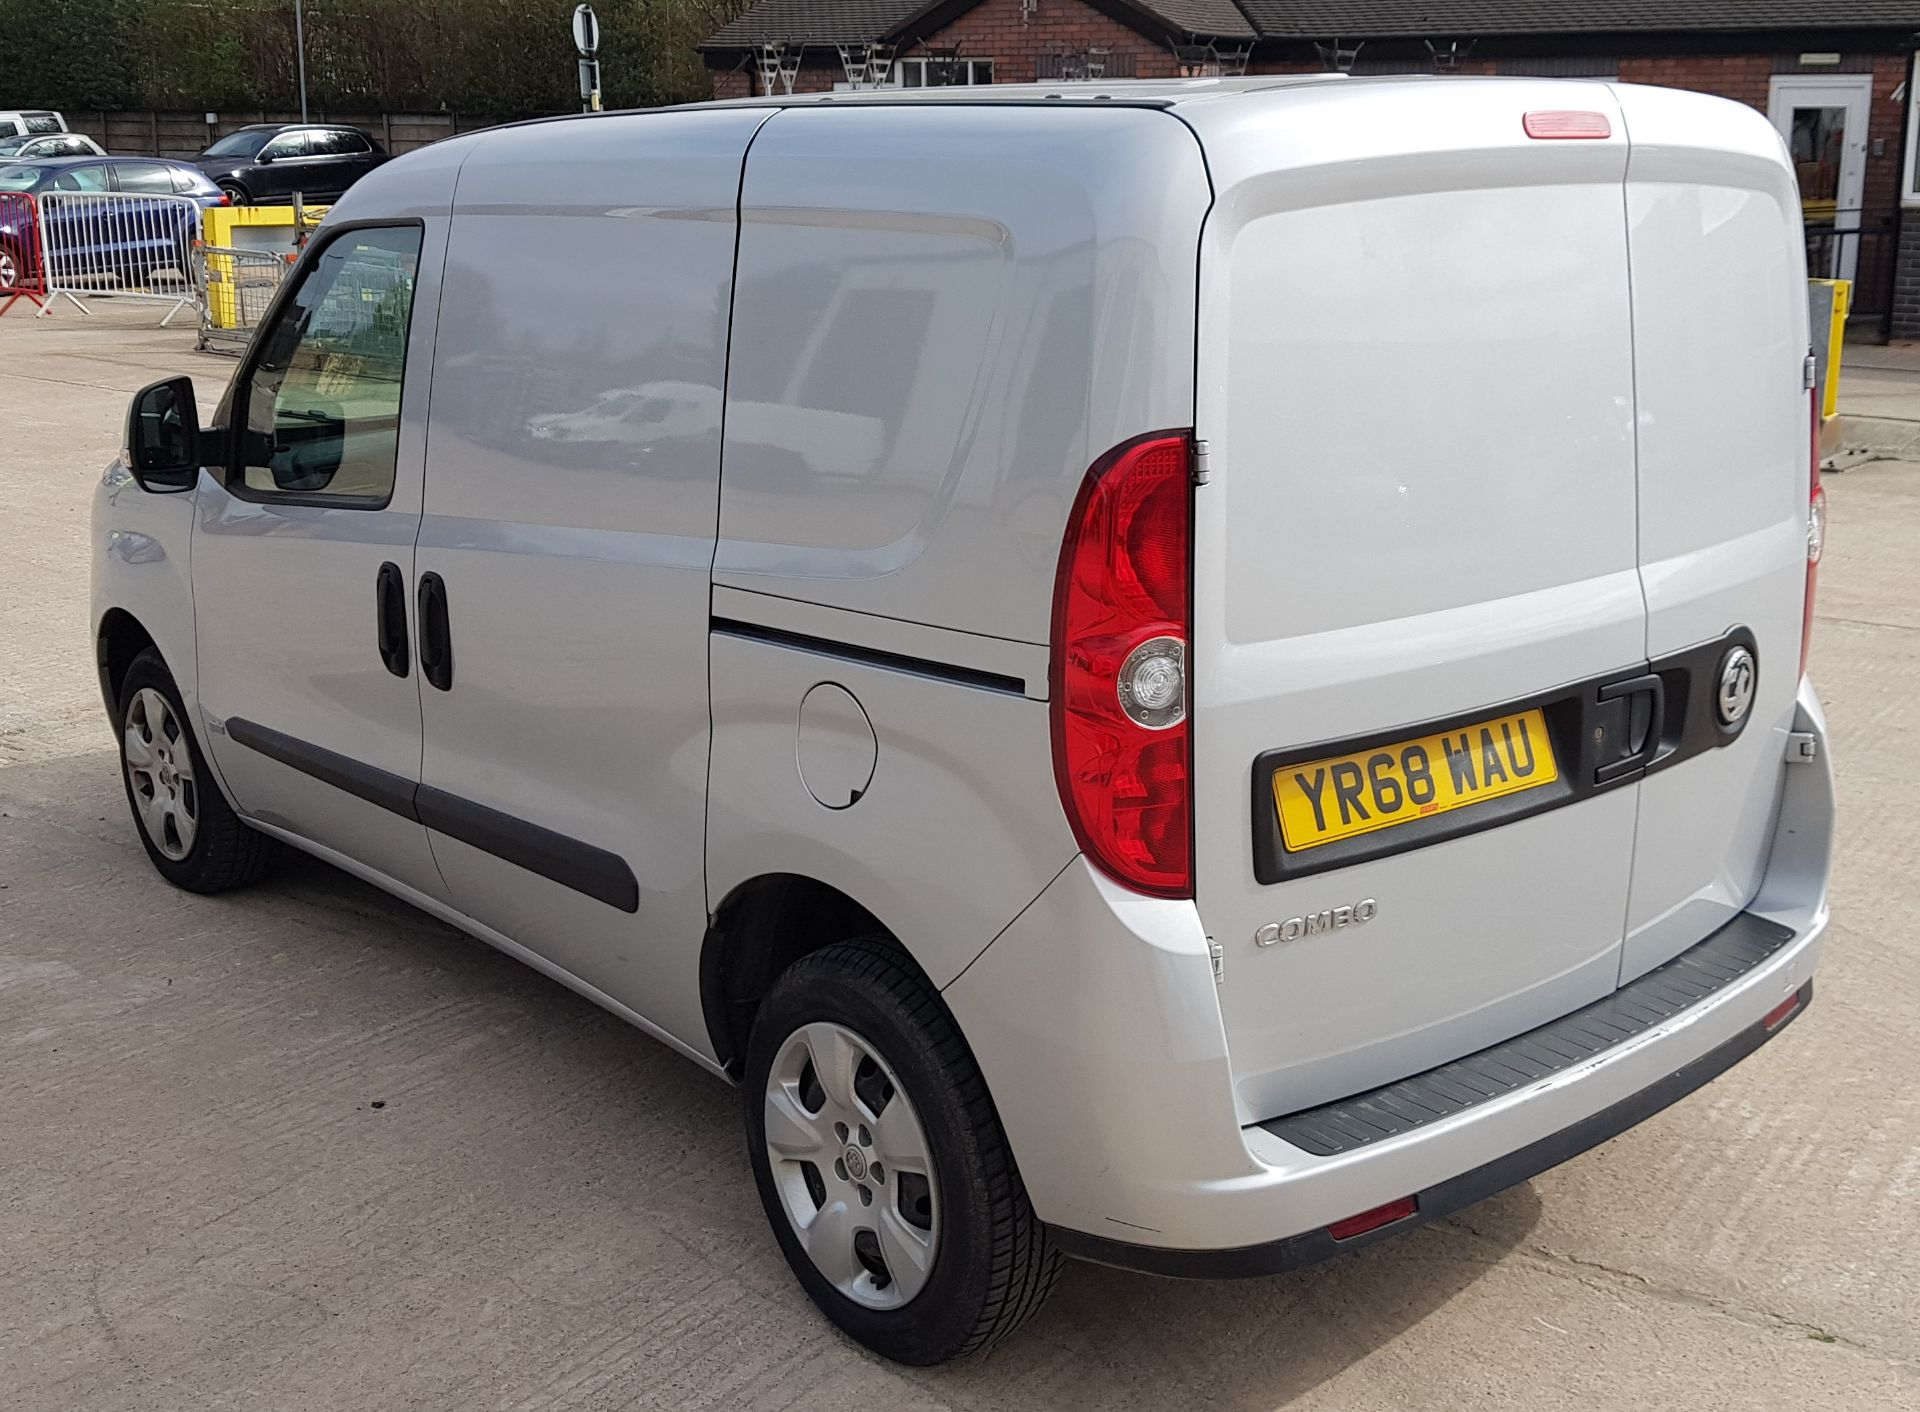 SILVER VAUXHALL COMBO 2000 SPORTIVE CDTI. ( DIESEL ) Reg : YR68 WAU Mileage : 39451 Details: WITH - Image 3 of 7